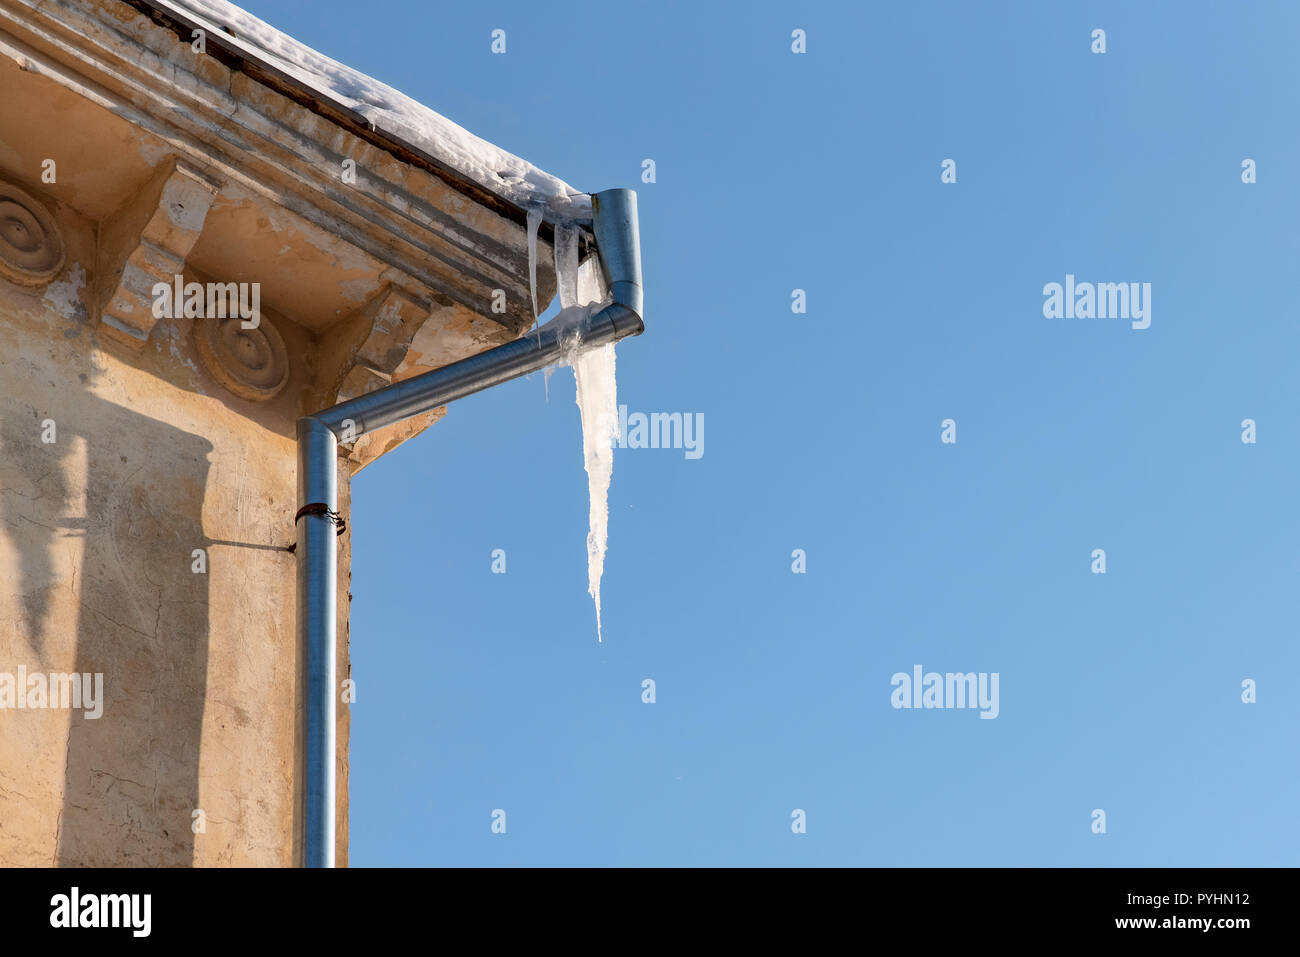 Winter threats: icicles hang from roof of building. Danger for passers, threat of death and injury from icicles - Stock Image